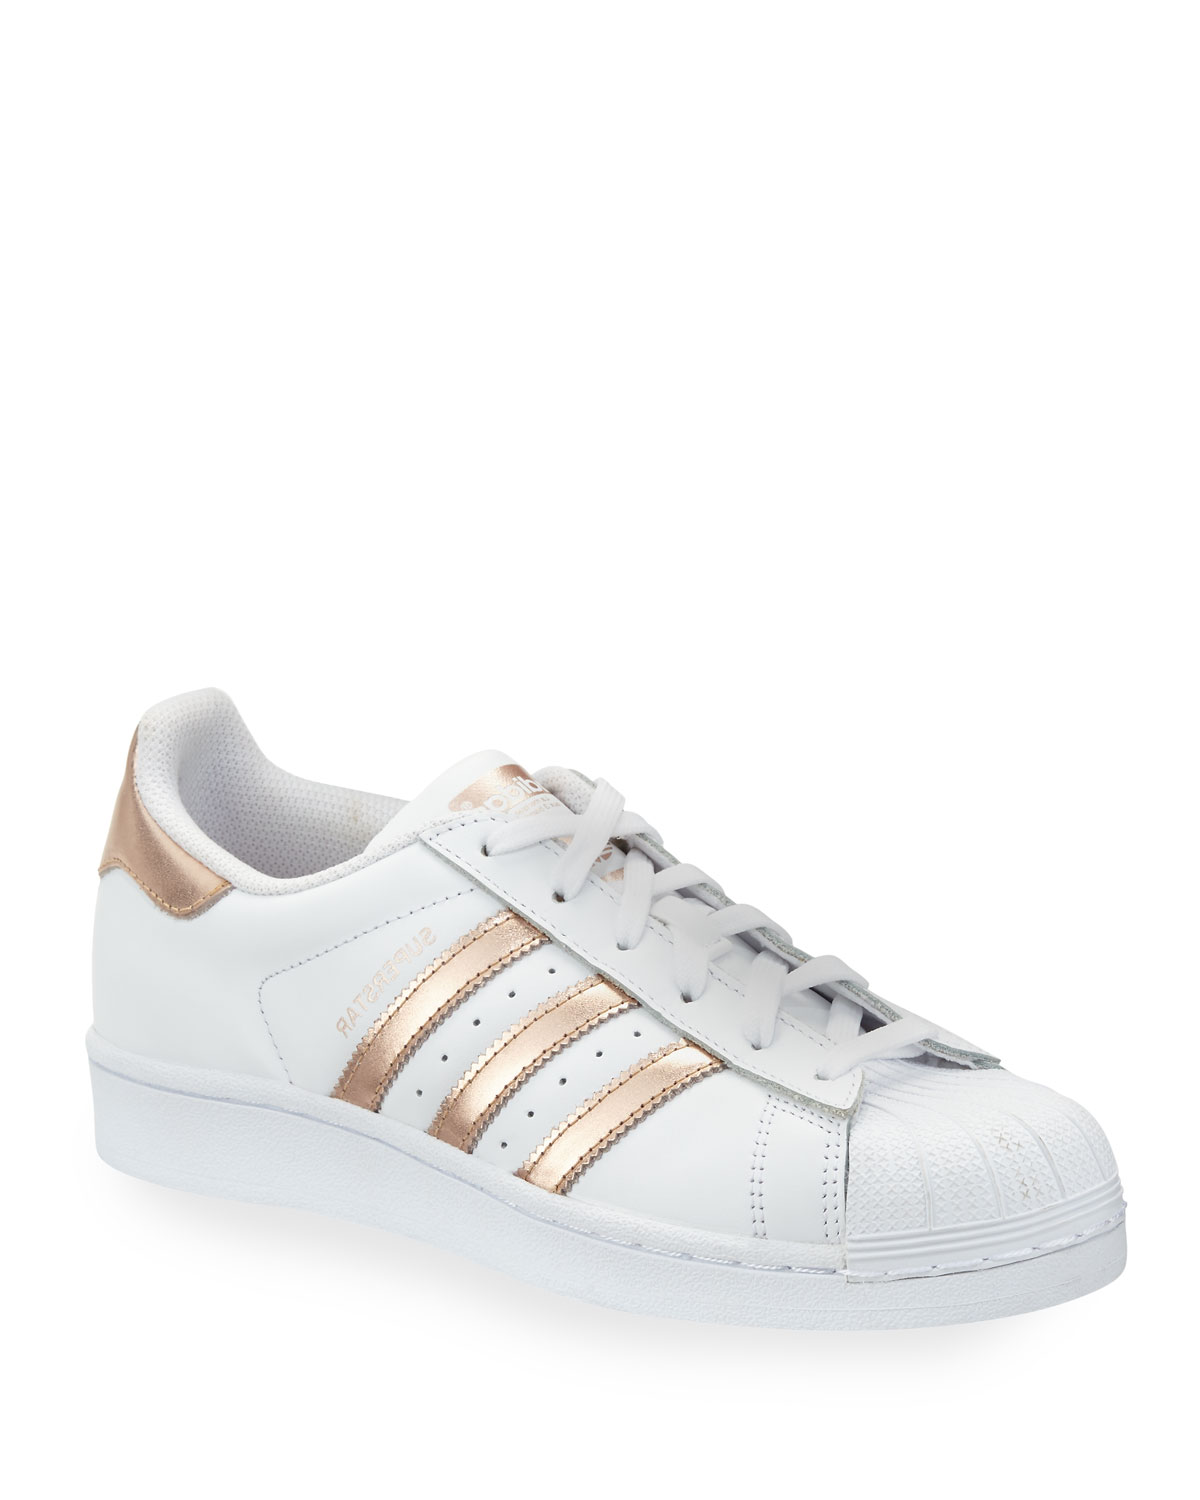 superstars adidas rose gold